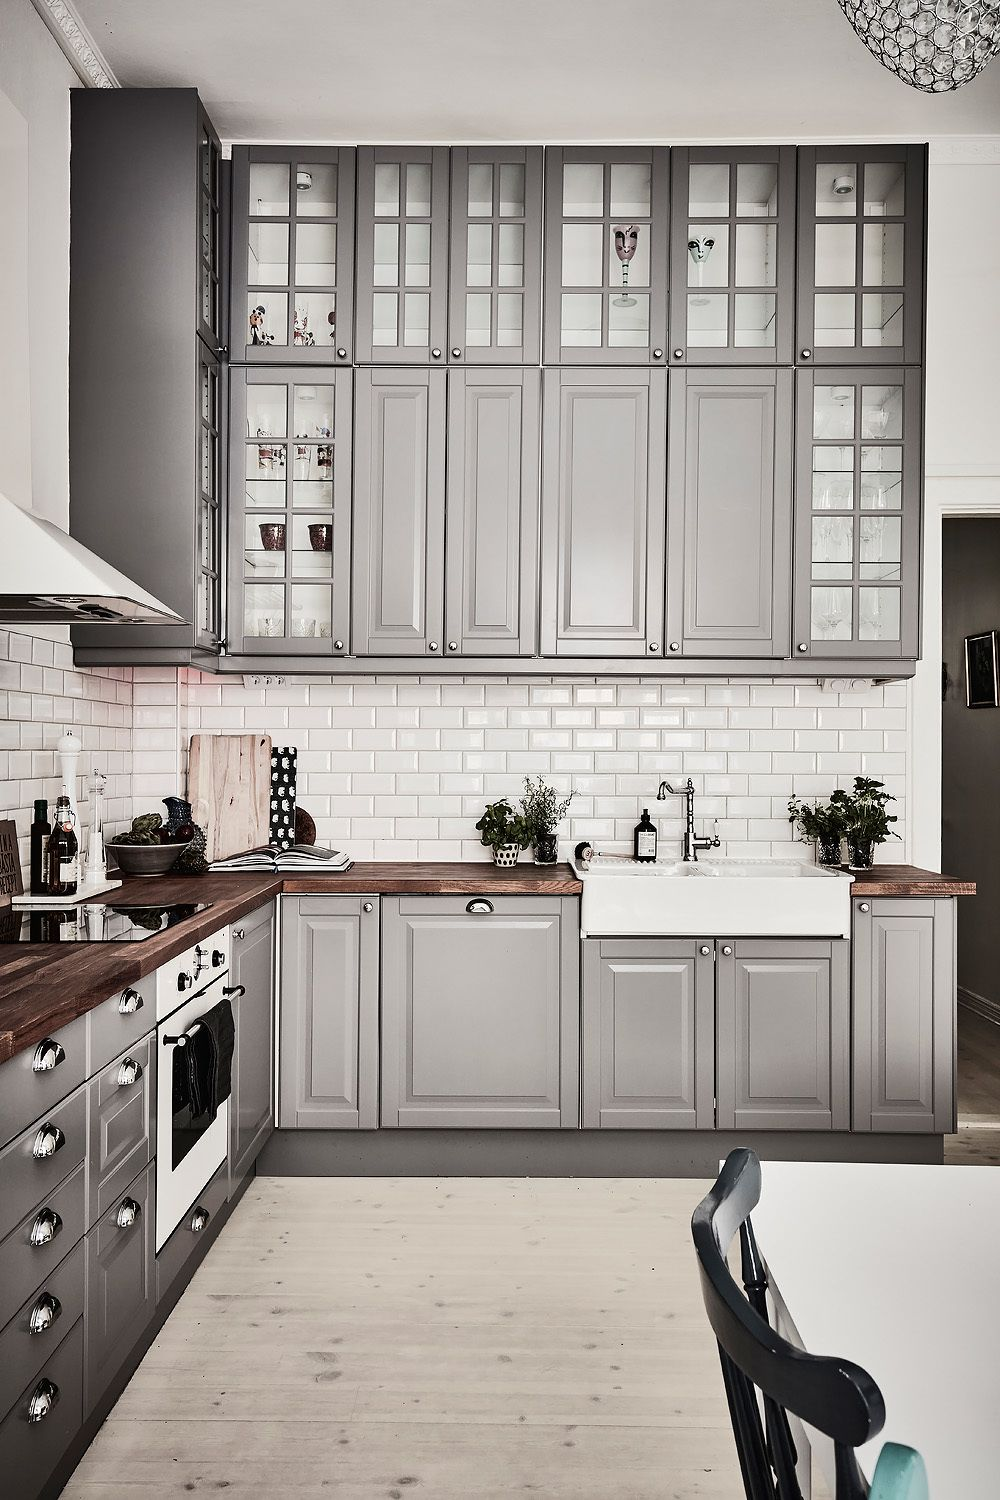 Inspiring Kitchens You Wont Believe Are IKEA Decorating Tips - Colour schemes for grey kitchen units